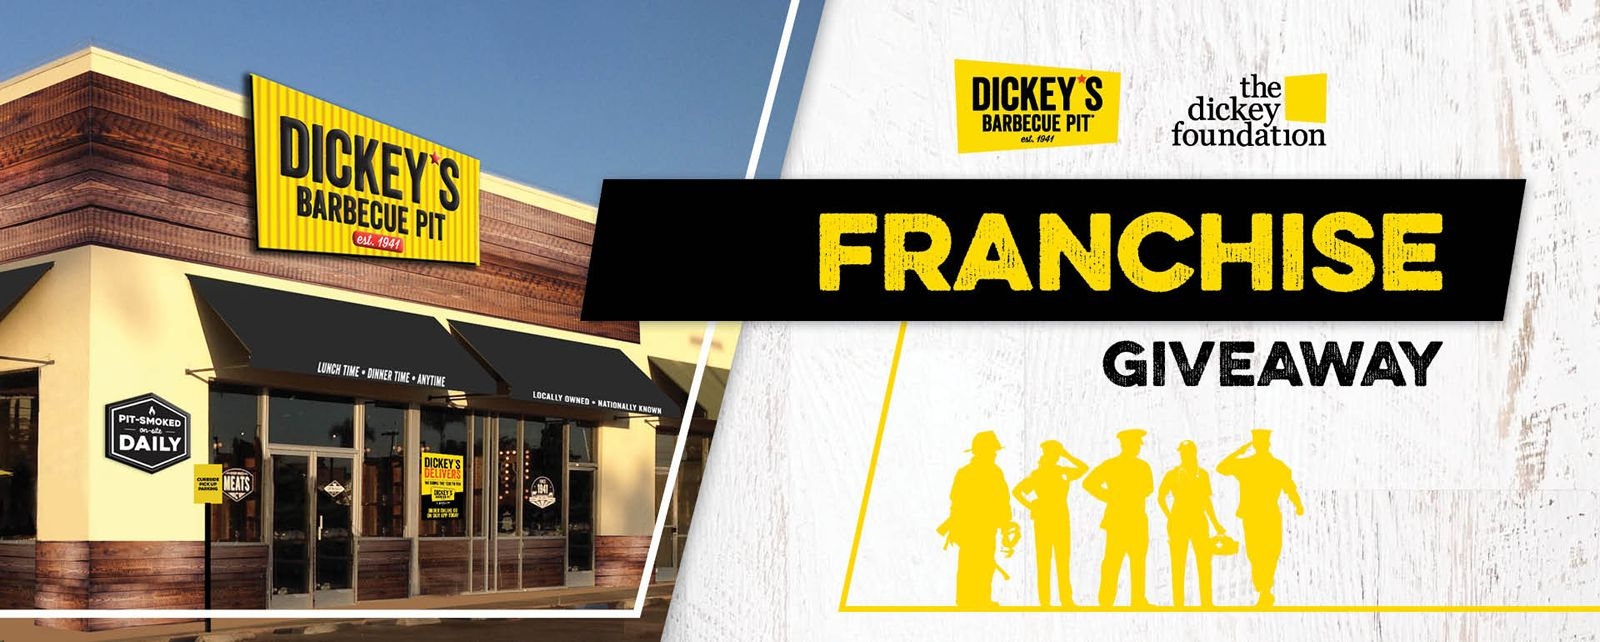 Be Your Own Pit Boss! Dickey's Barbecue Pit Announces Franchise Fee Giveaway For First Responders, Active Military, and Veterans